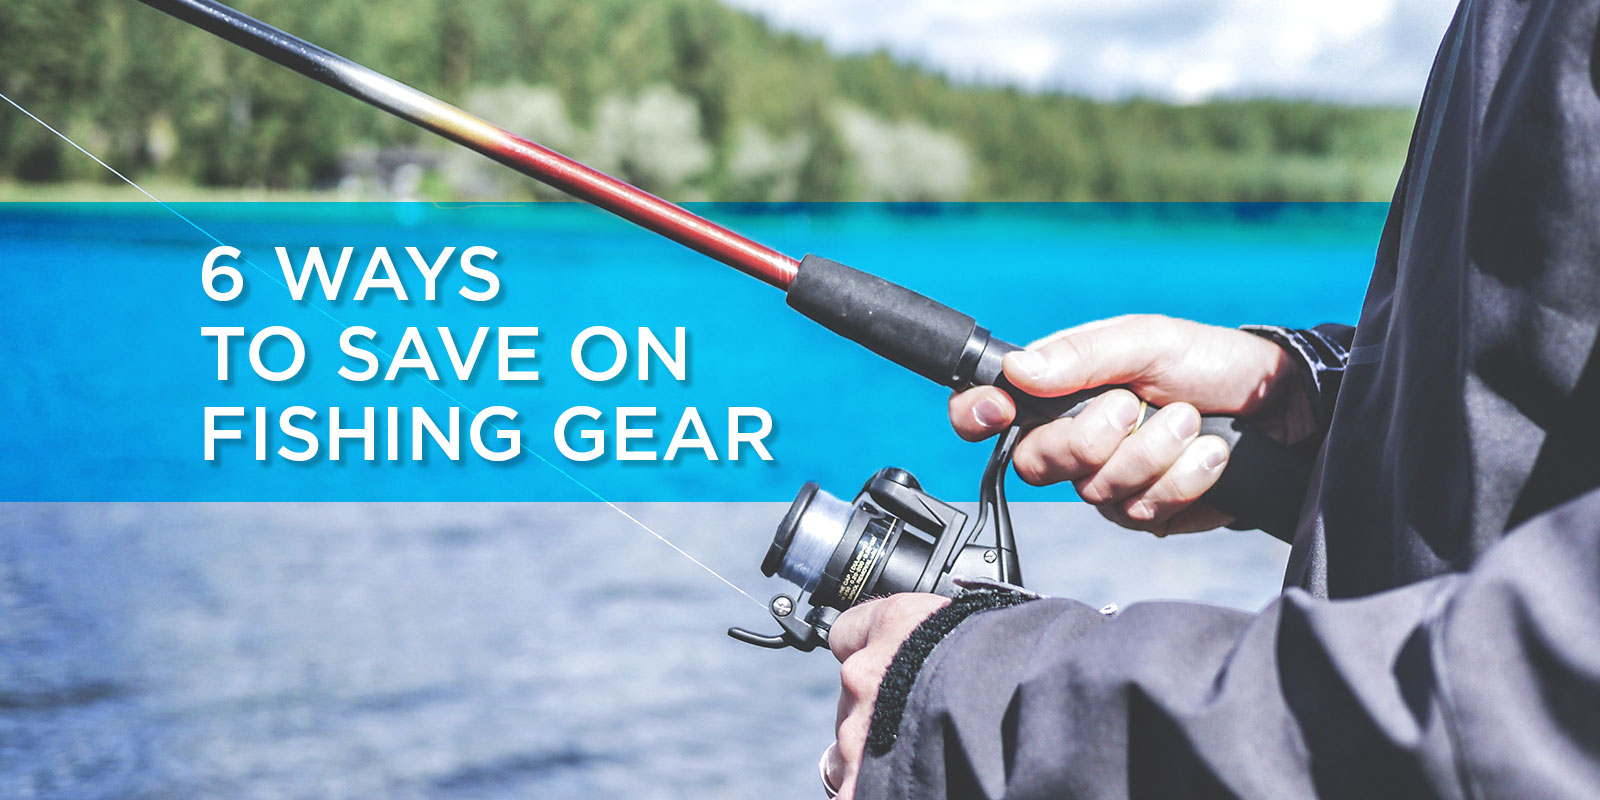 6 Ways to Save on Fishing Gear